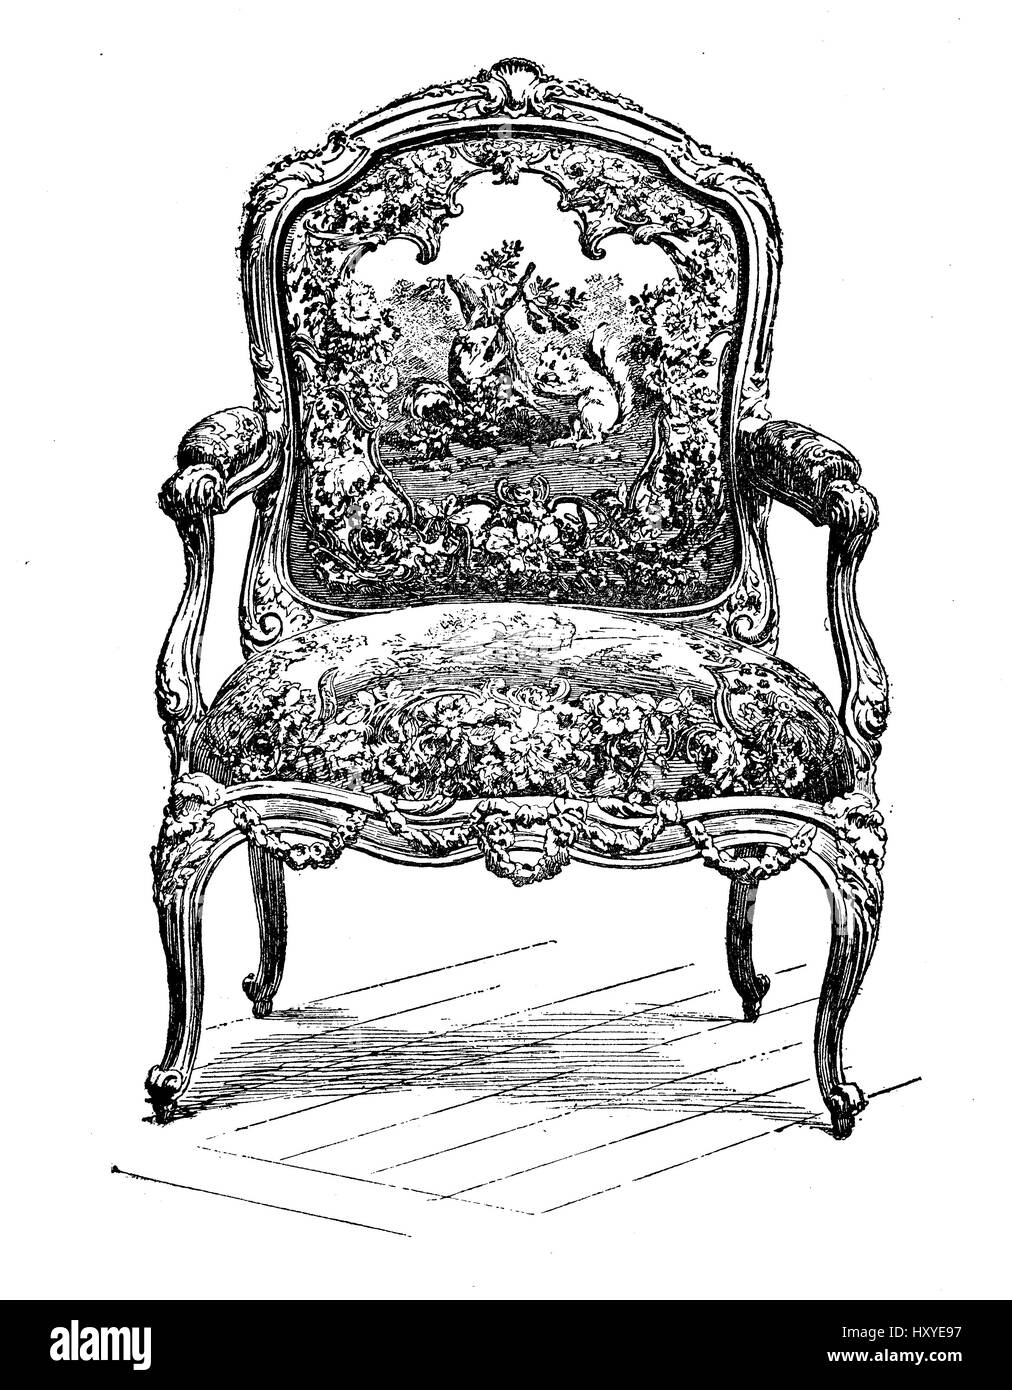 Vintage engraving of rococo style upholstered chair, XVII century - Vintage Engraving Of Rococo Style Upholstered Chair, XVII Century